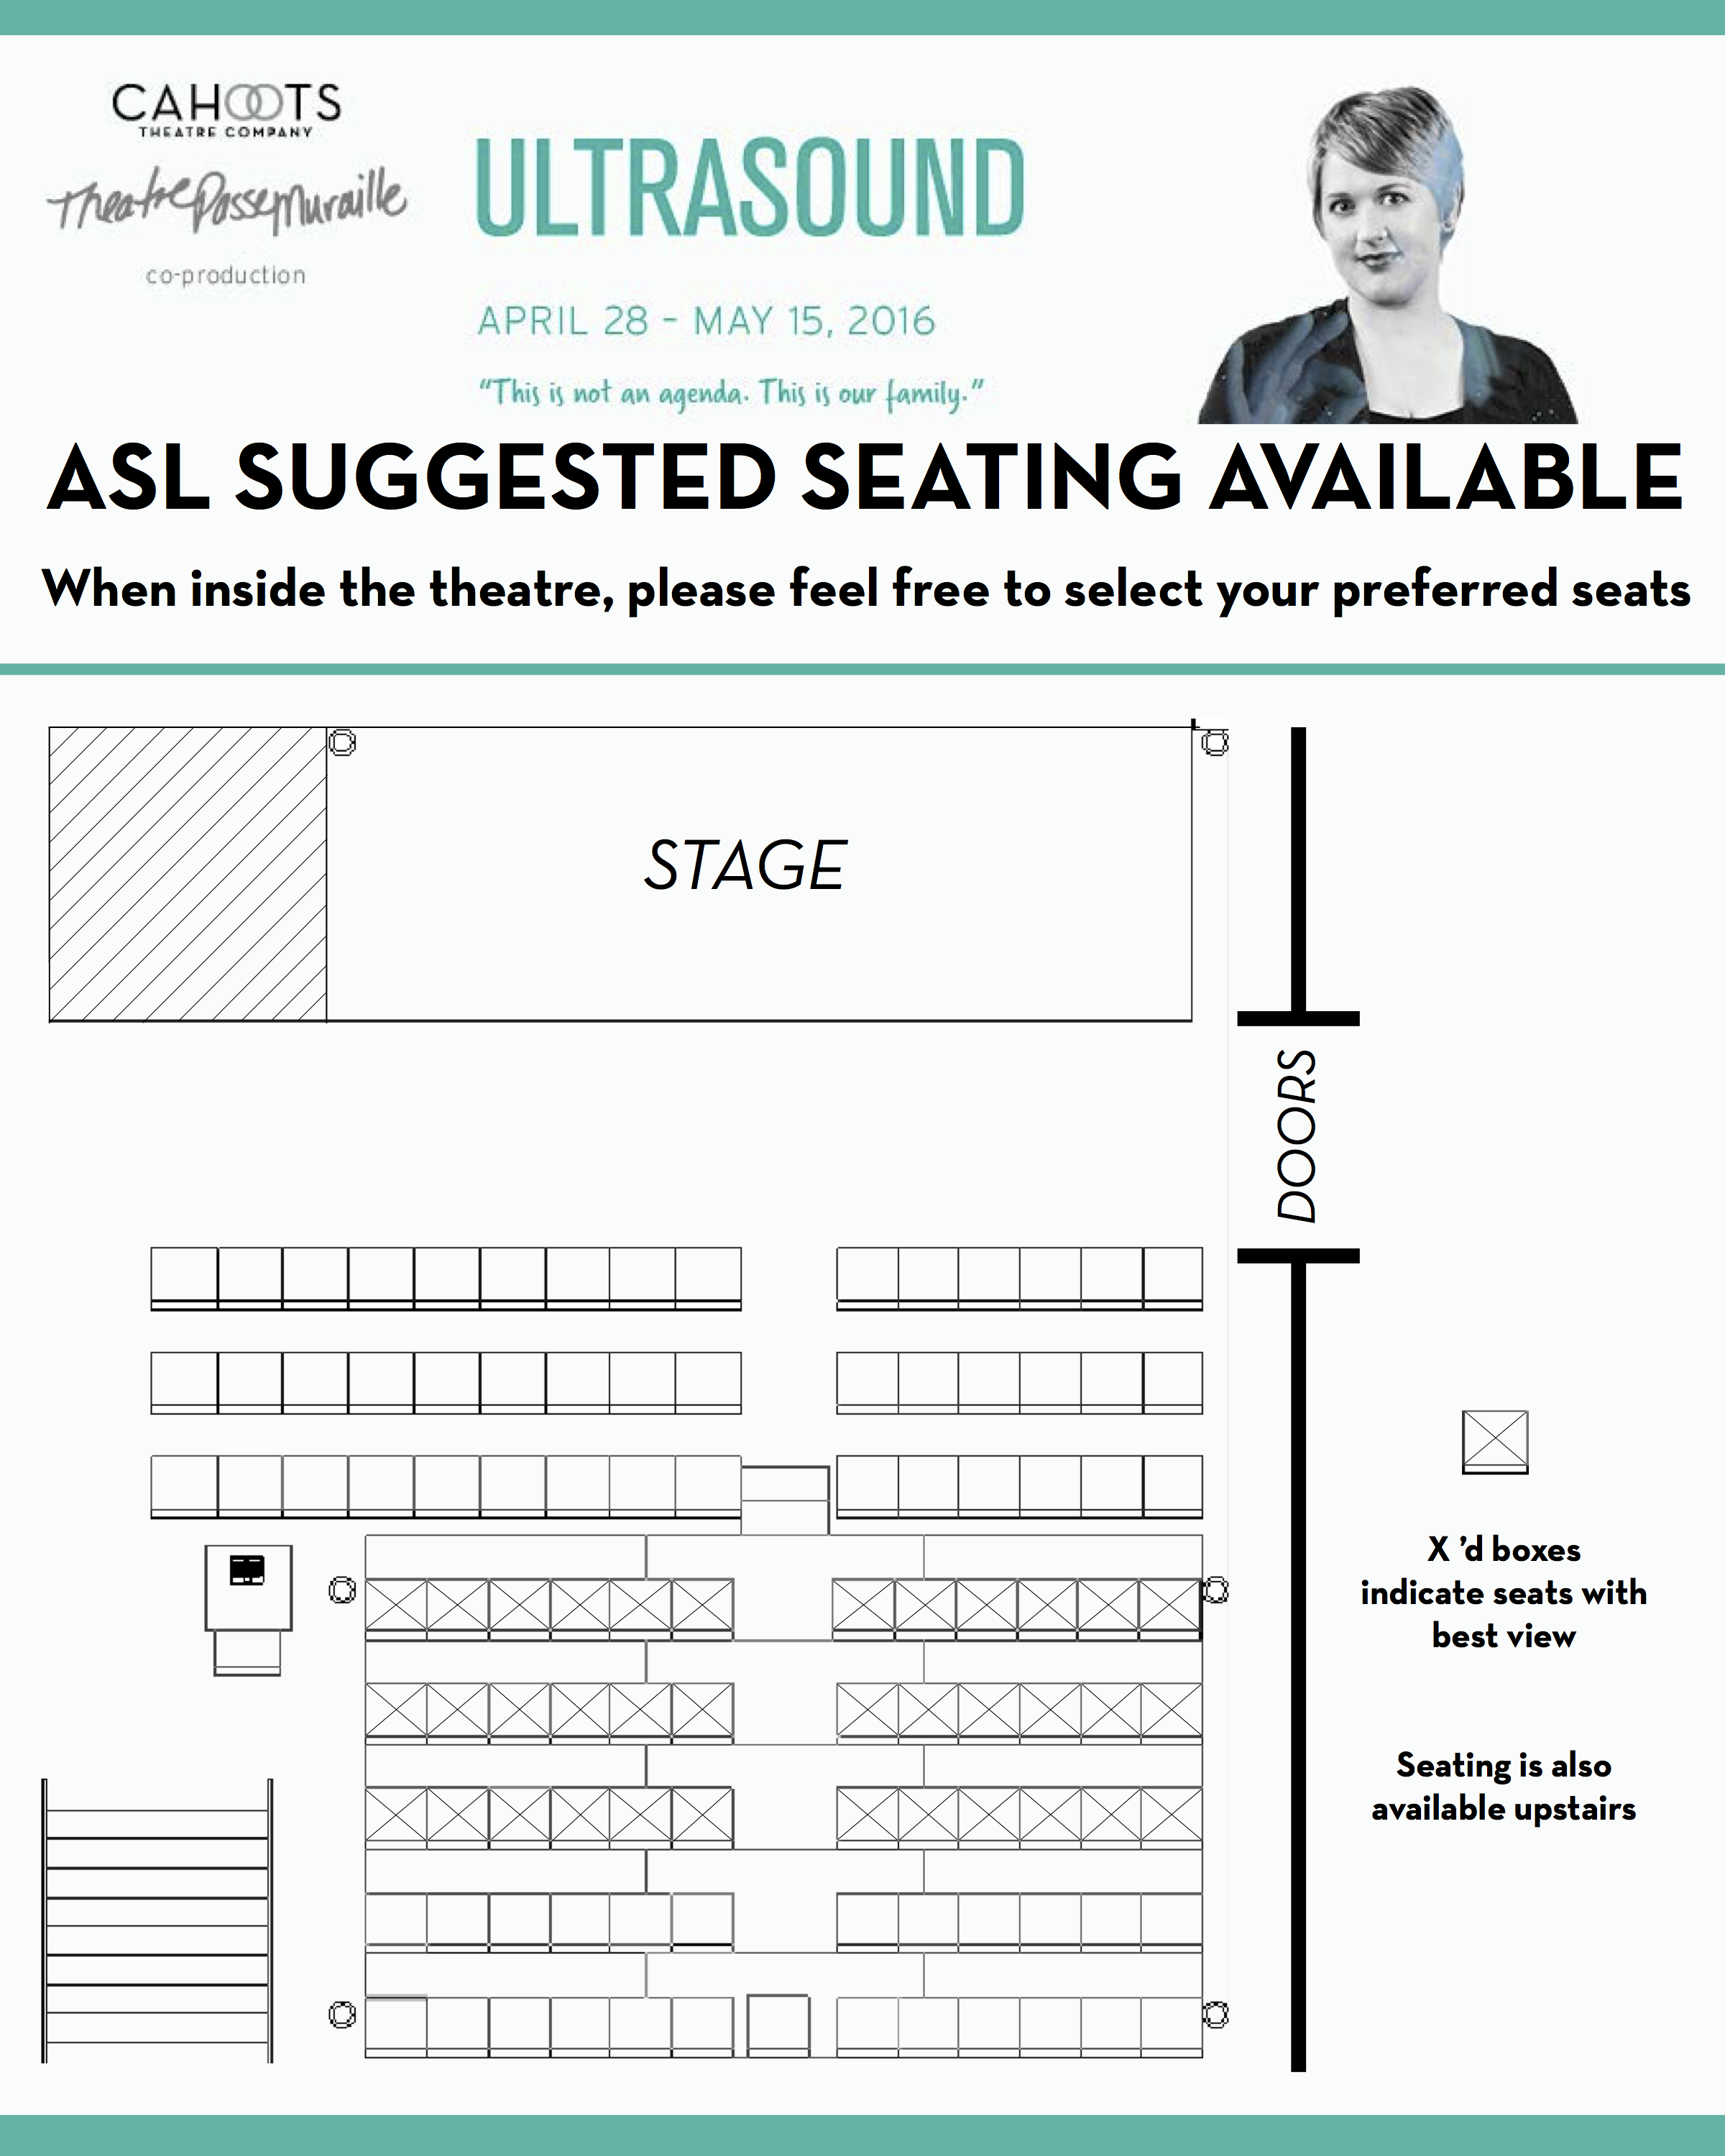 ASL Reserved Seating Chart used in Ultrasound